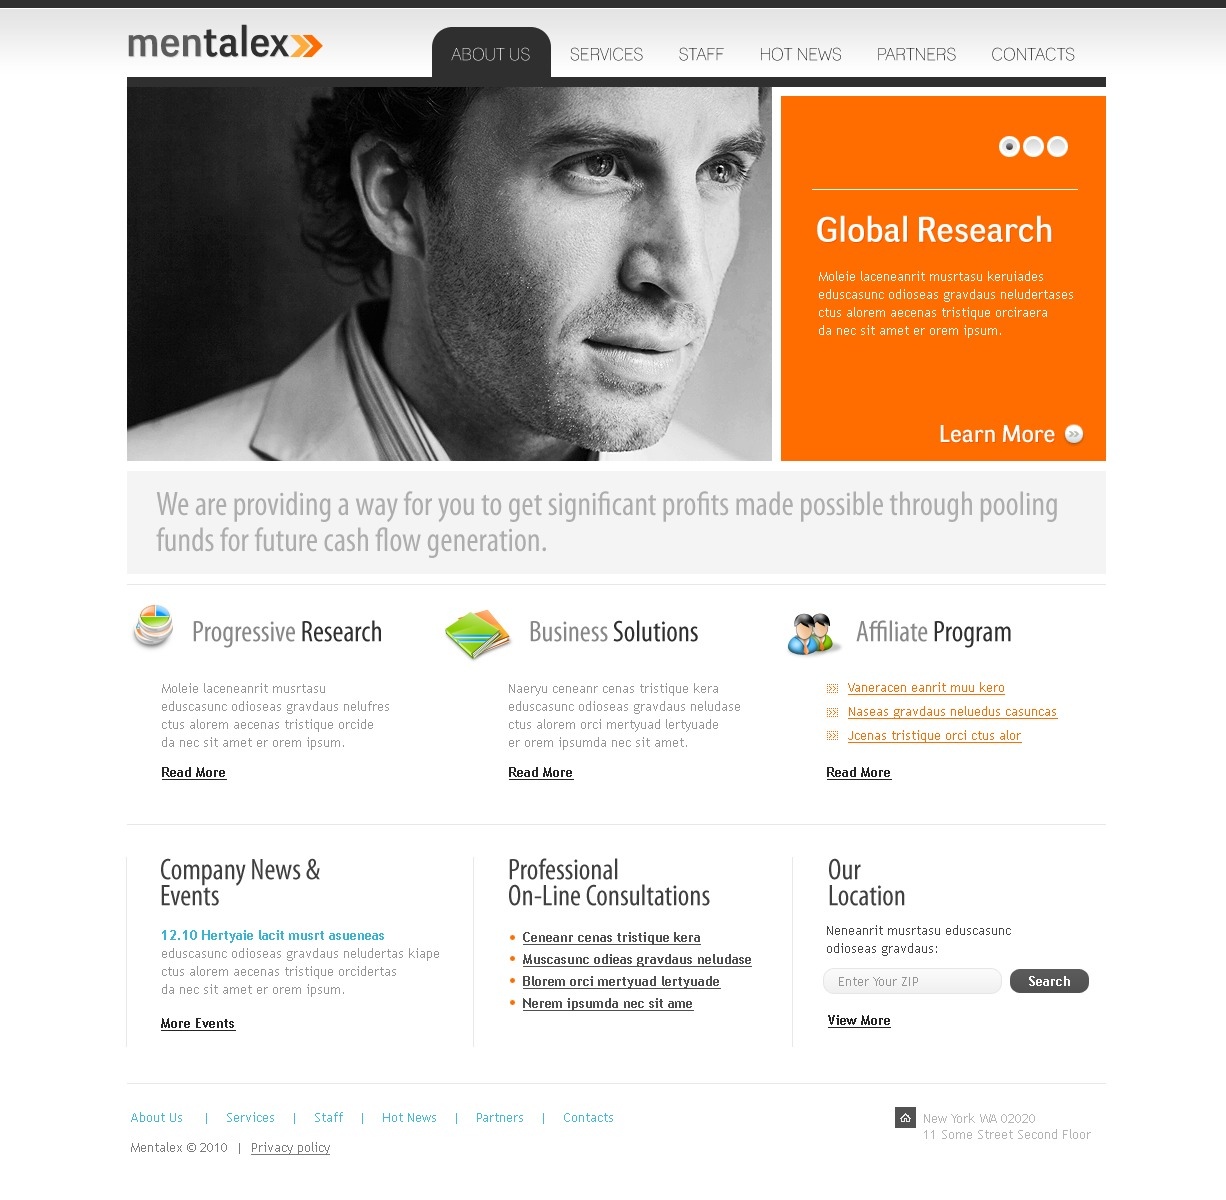 The Mentalex Business Company PSD Design 54203, one of the best PSD templates of its kind (business, wide, jquery), also known as mentalex business company PSD template, corporate solutions PSD template, innovations PSD template, contacts PSD template, service PSD template, support PSD template, information dealer PSD template, stocks PSD template, team PSD template, success PSD template, money PSD template, marketing PSD template, director PSD template, manager PSD template, analytics PSD template, planning PSD template, limited PSD template, office PSD template, sales and related with mentalex business company, corporate solutions, innovations, contacts, service, support, information dealer, stocks, team, success, money, marketing, director, manager, analytics, planning, limited, office, sales, etc.